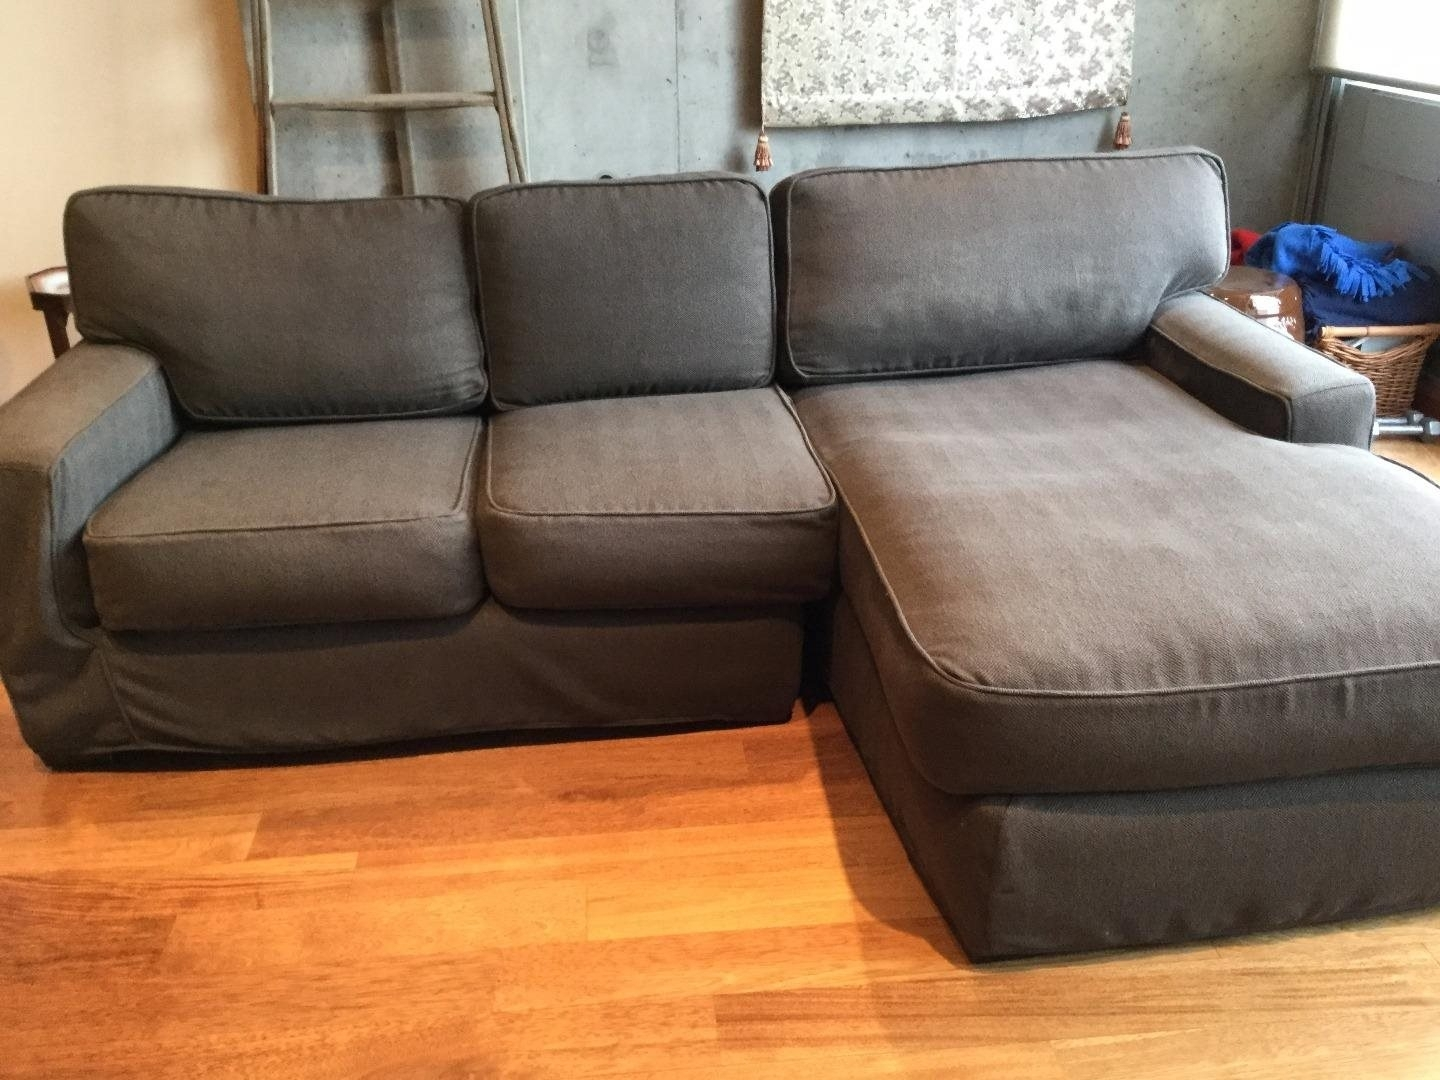 Quatrine Upholstered Sectional Sofa: For Sale In San Francisco, Ca Within Quatrine Sectional Sofas (View 3 of 10)